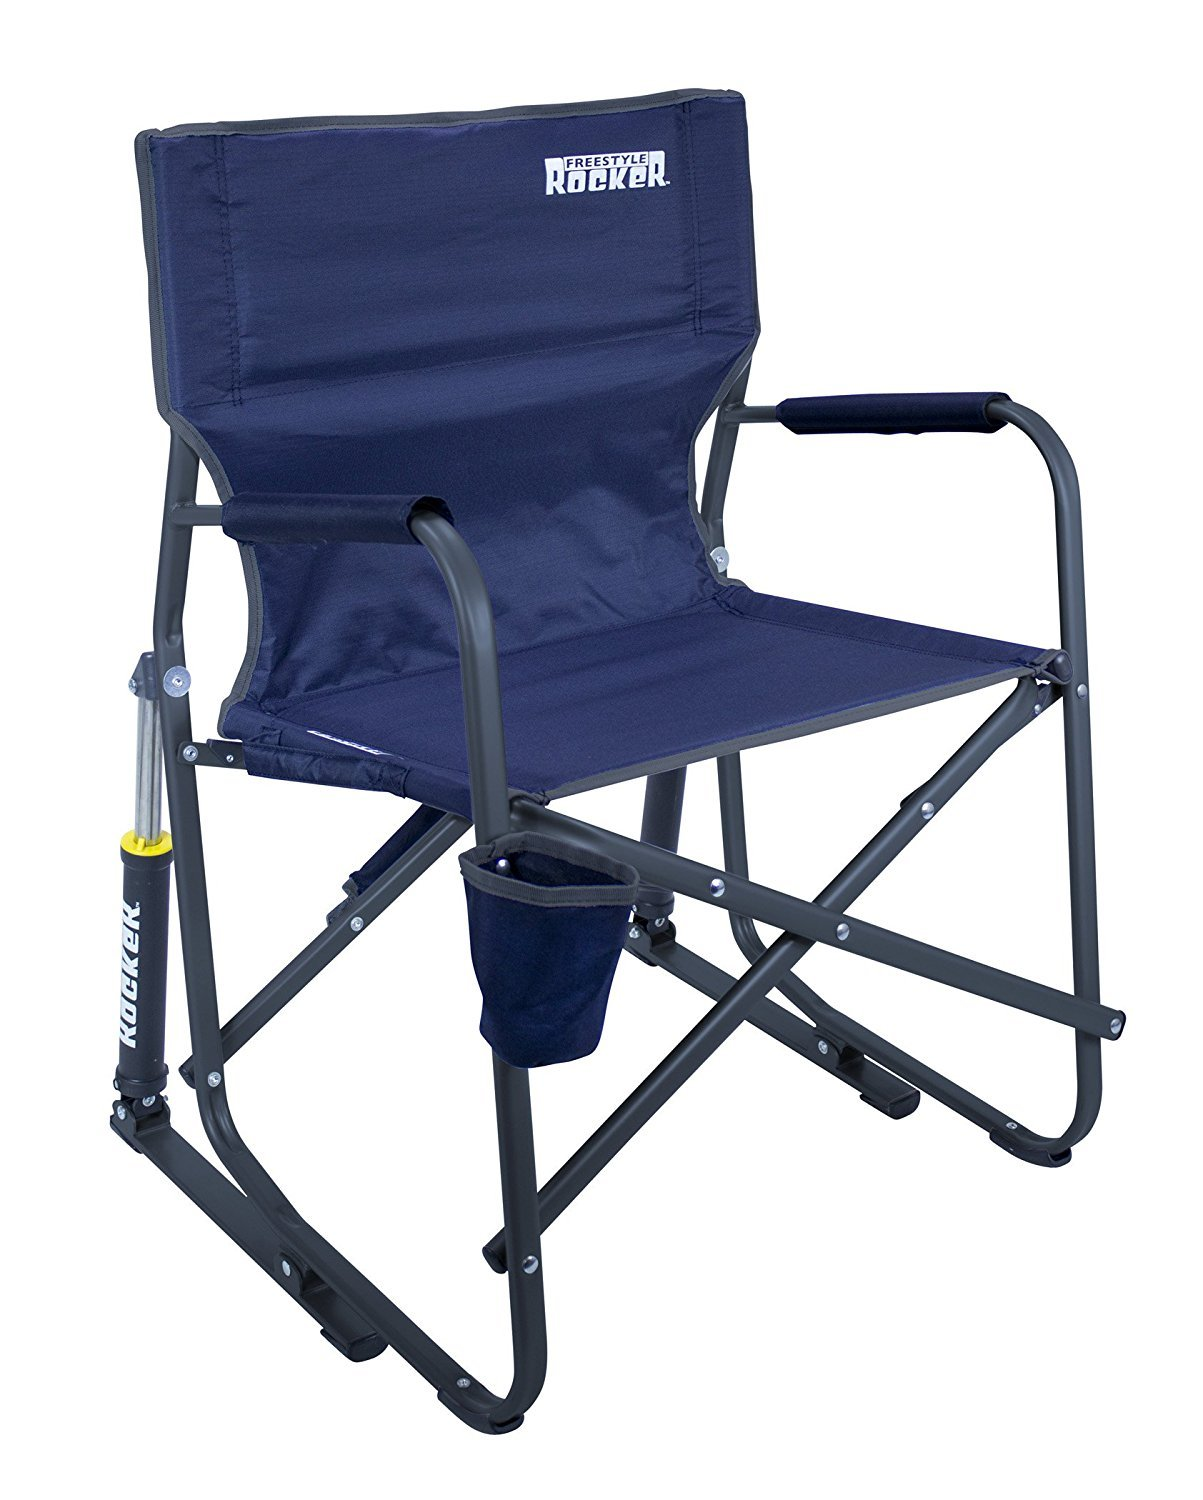 GCI Outdoor Freestyle Rocker, Indigo Blue [並行輸入品]   B01IRFTOWY